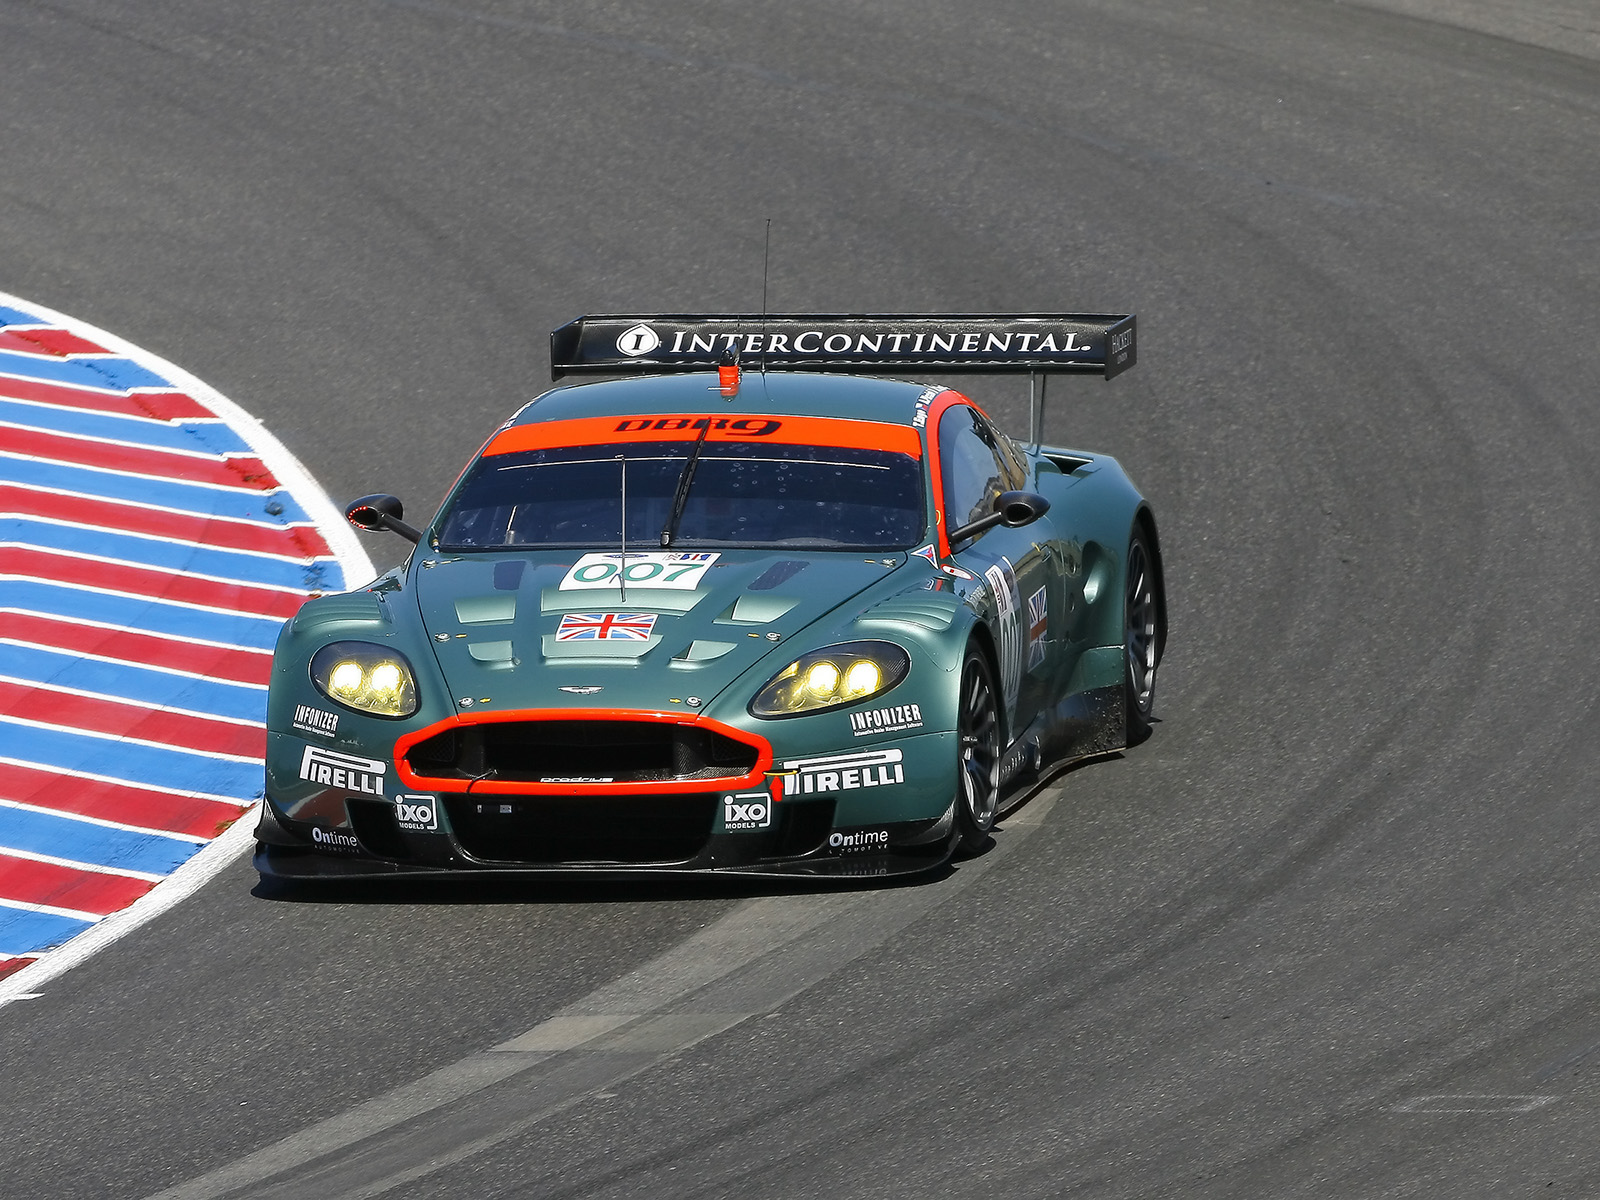 Cars Wallpapers: Aston Martin DB9 Wallpapers